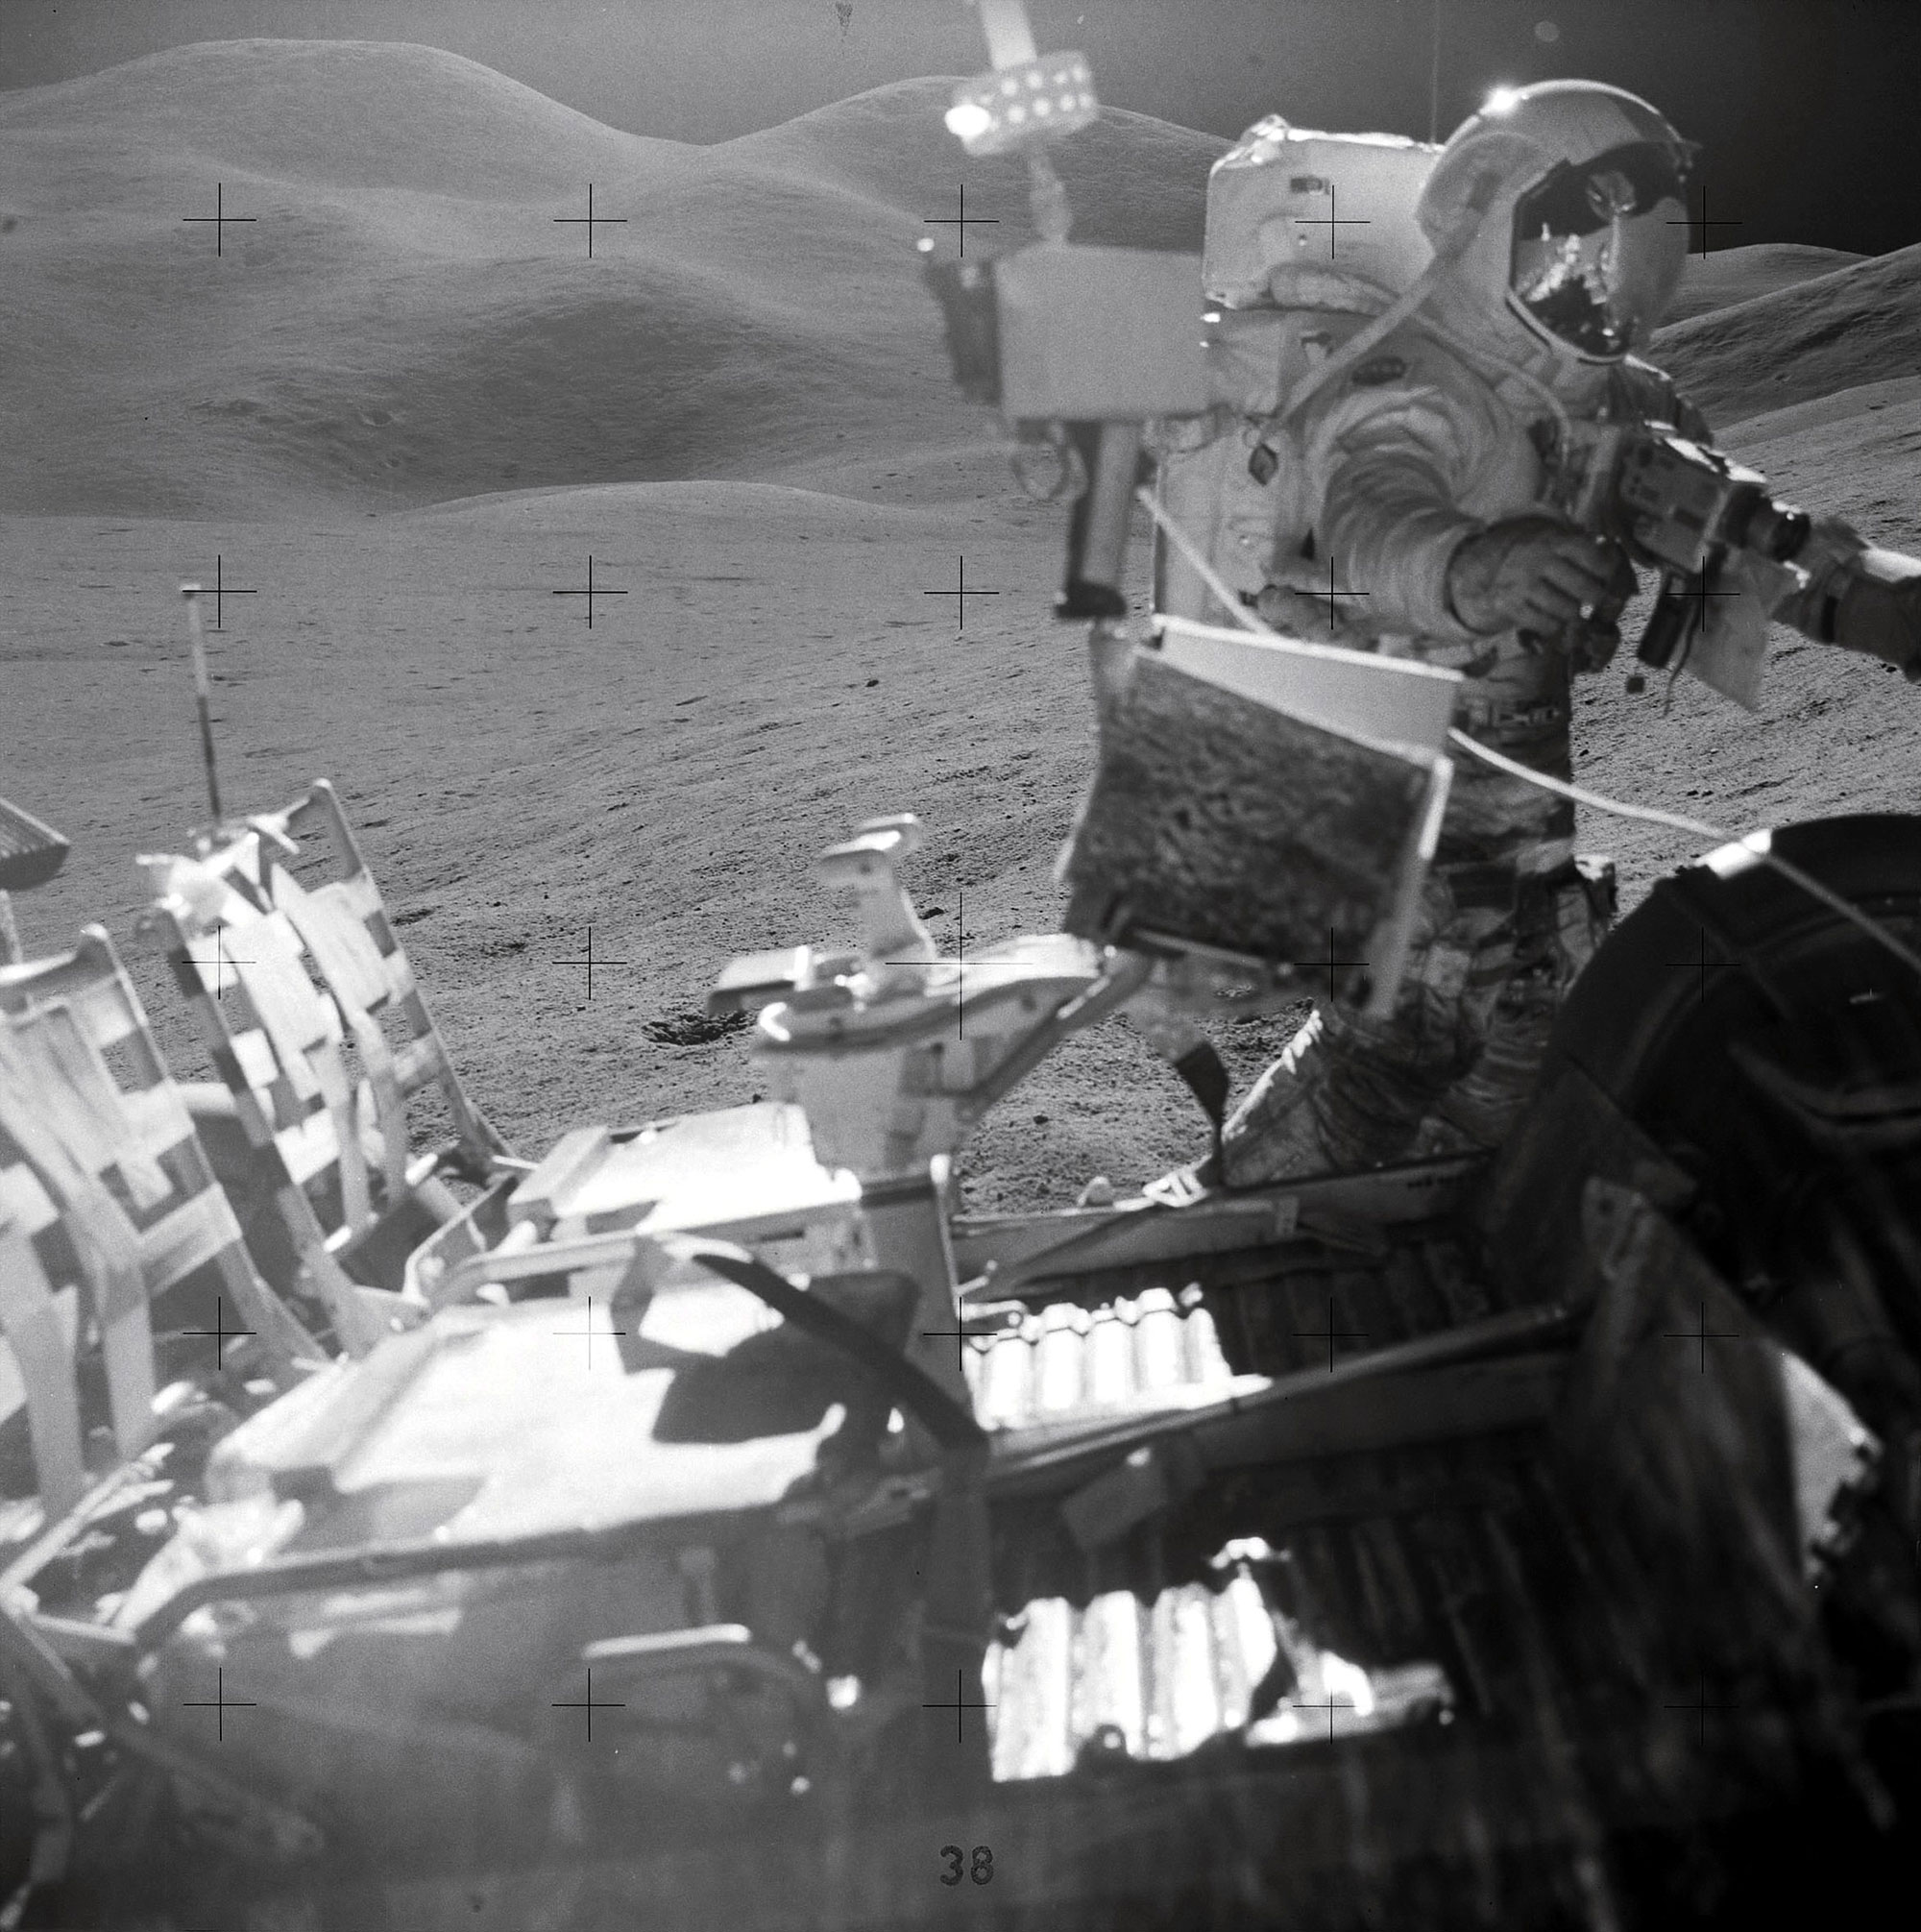 During EVA 2, Irwin and Scott collected rock and soil samples, a core sample, and trench samples of an area about 5 km southeast of the Lunar Module. Credit: NASA via Retro Space Images